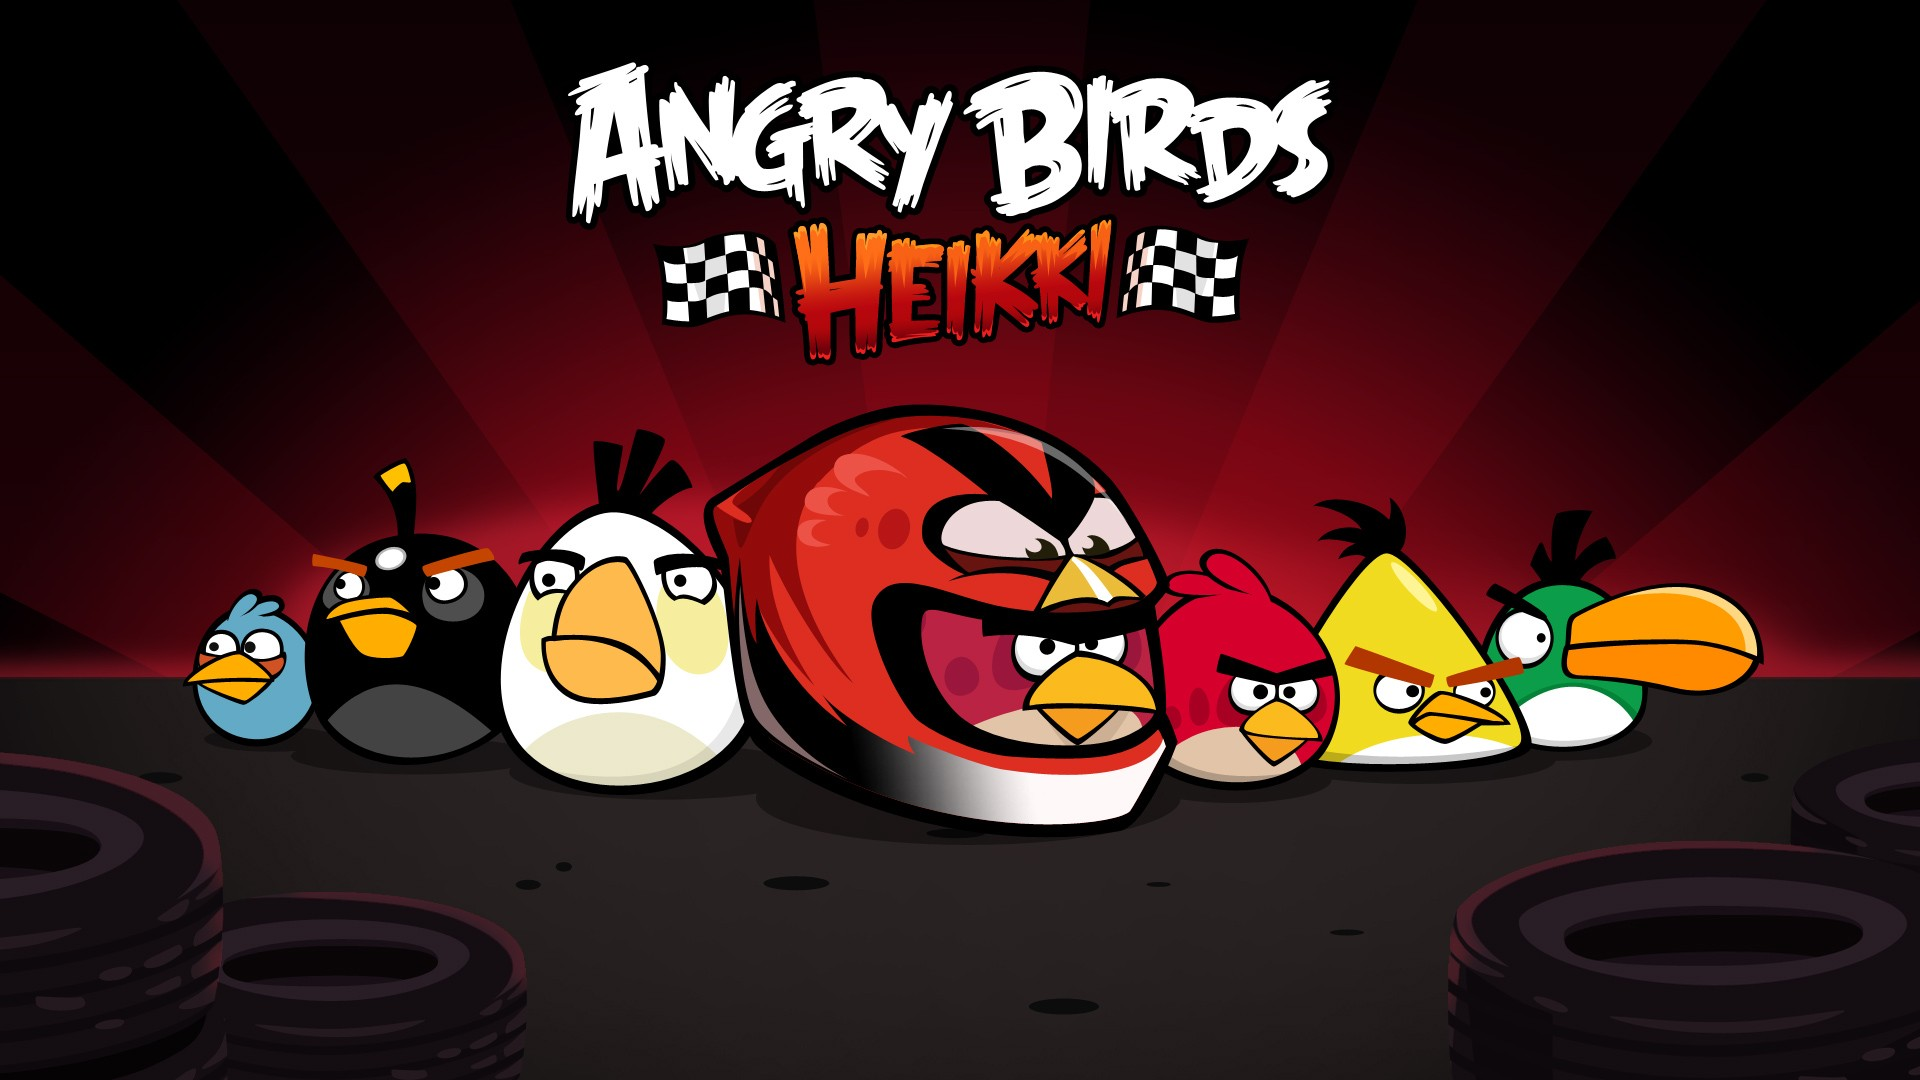 Best HD Angry Birds Wallpapers  DezineGuide 1920x1080